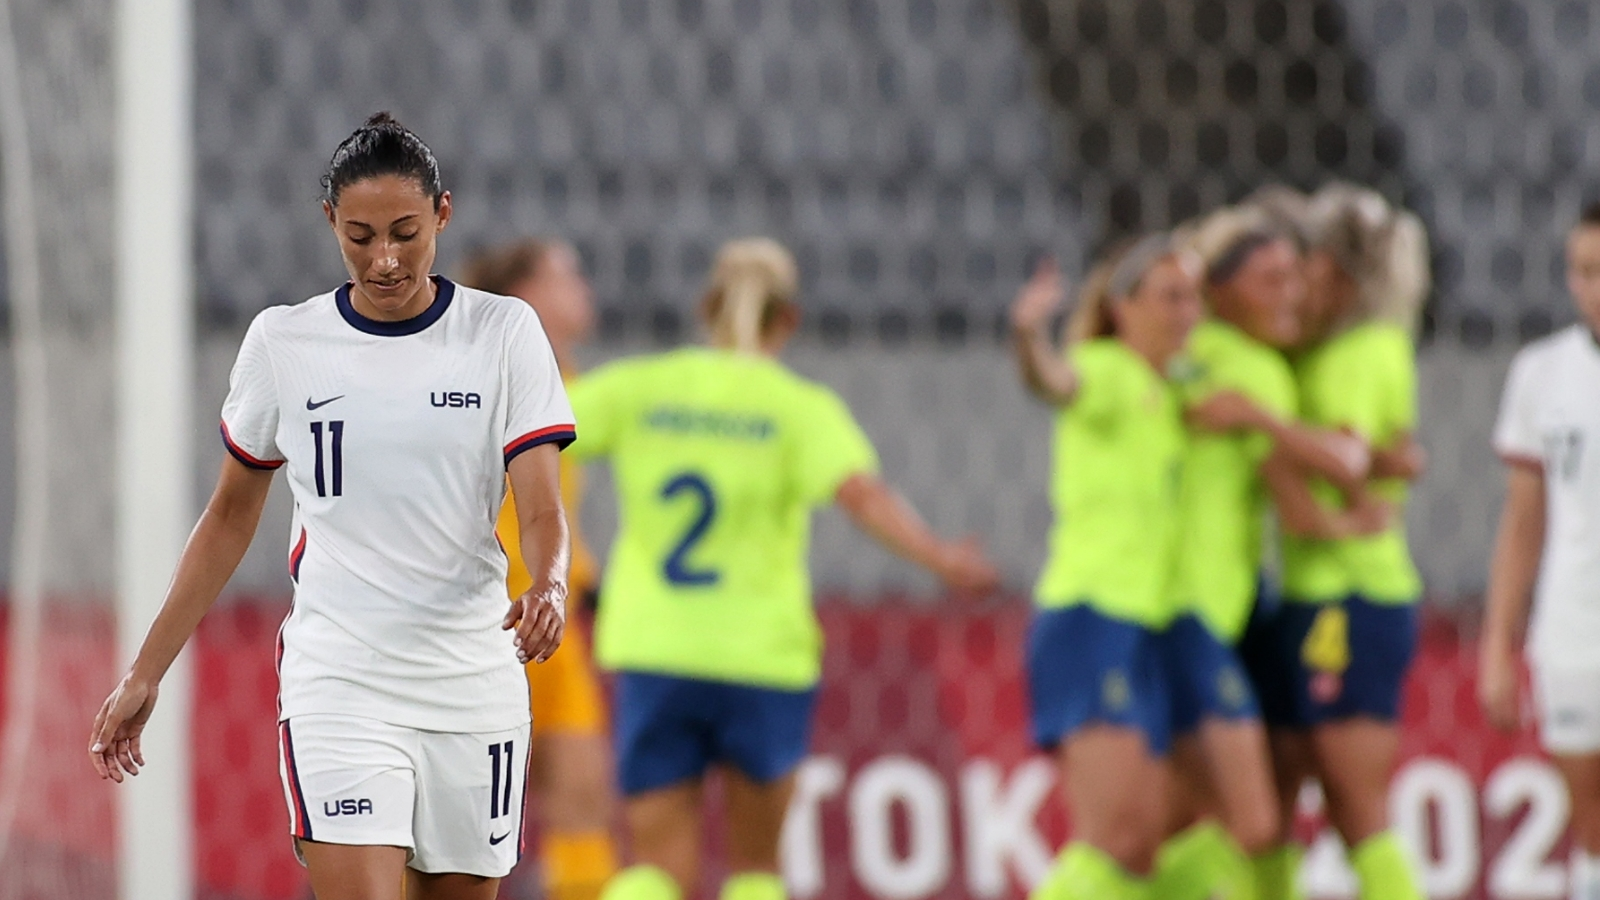 USWNT's 44-game unbeaten streak snapped in shocking Olympics 2020 opening defeat to Sweden